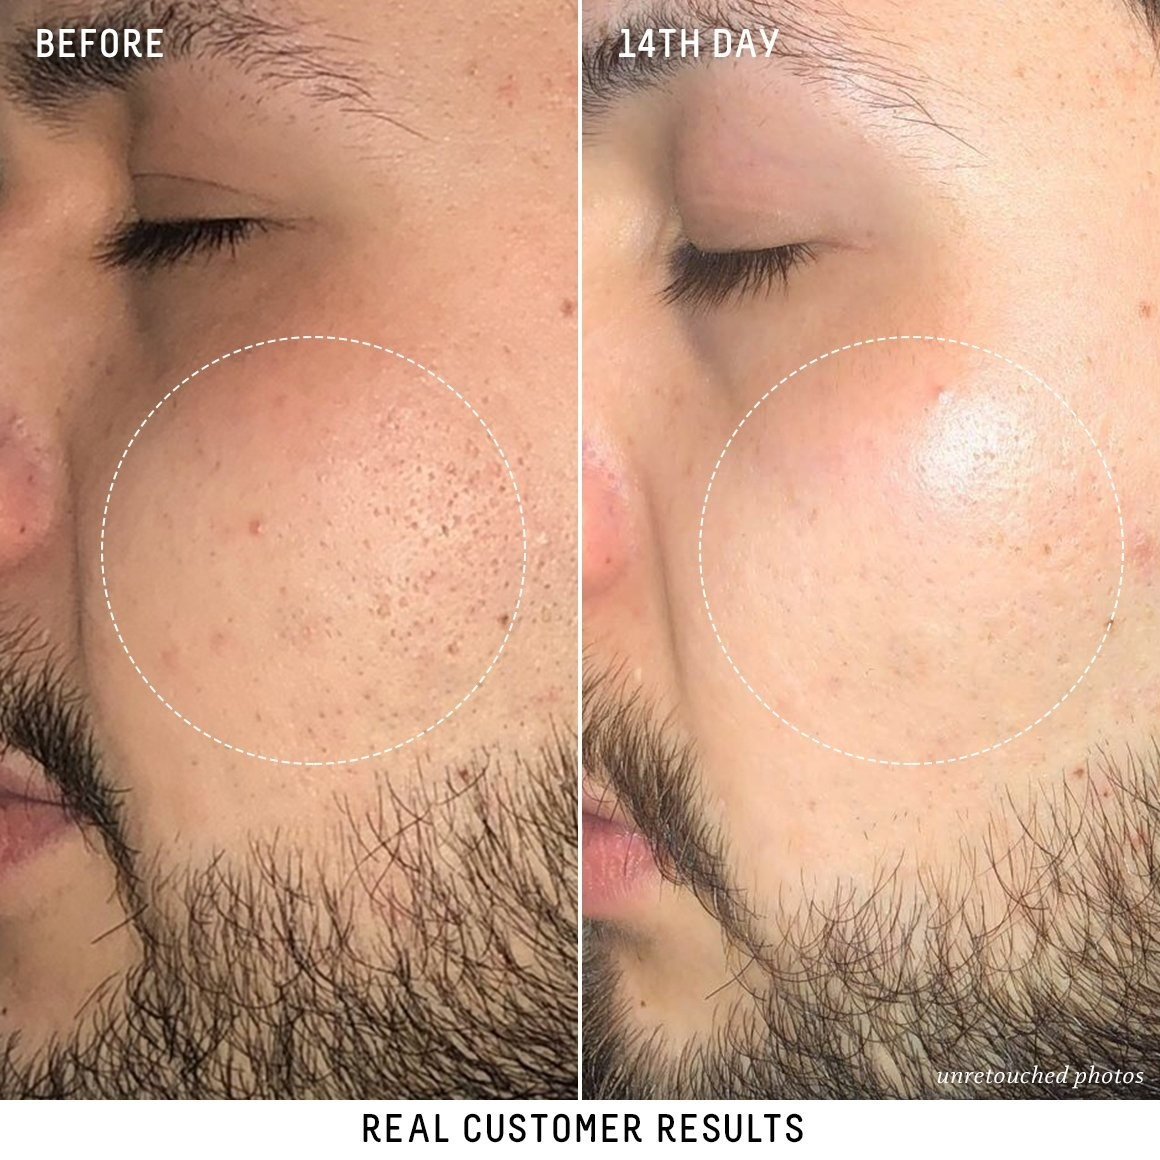 before of someones skin with noticeable pores and discoloration and an after photo of less noticeable pores and more even skin tone